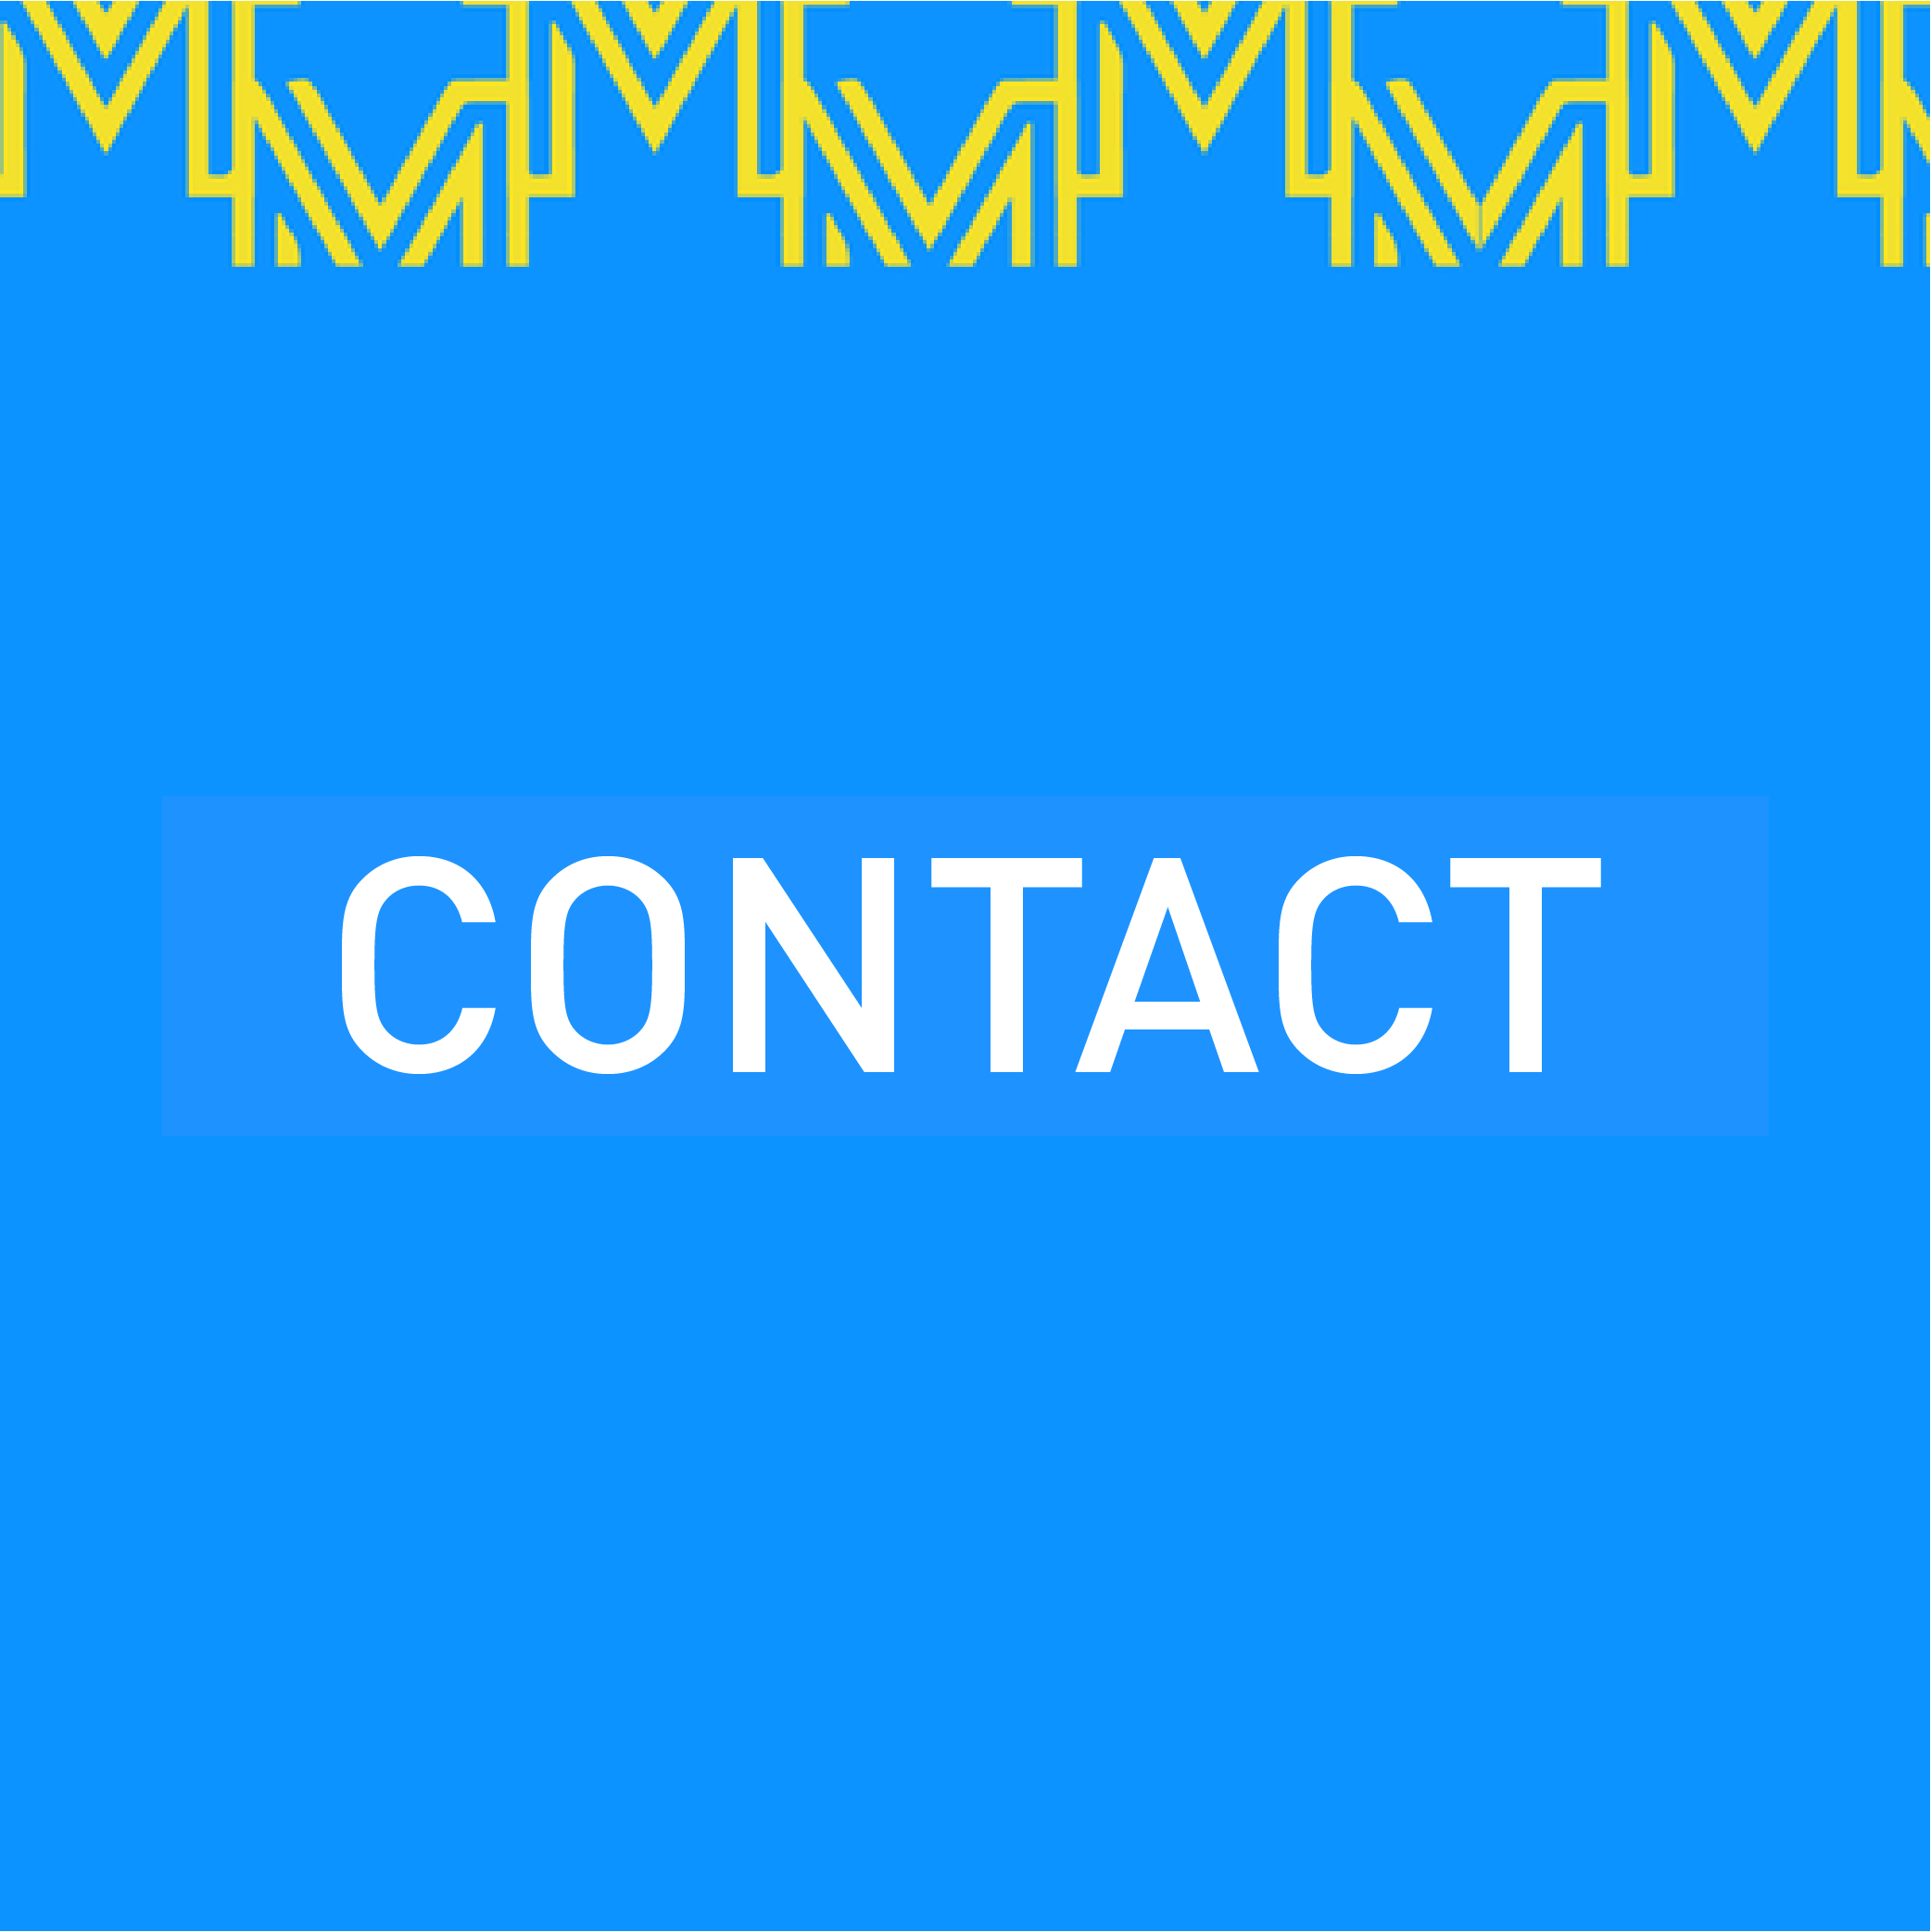 banner contact-03.png